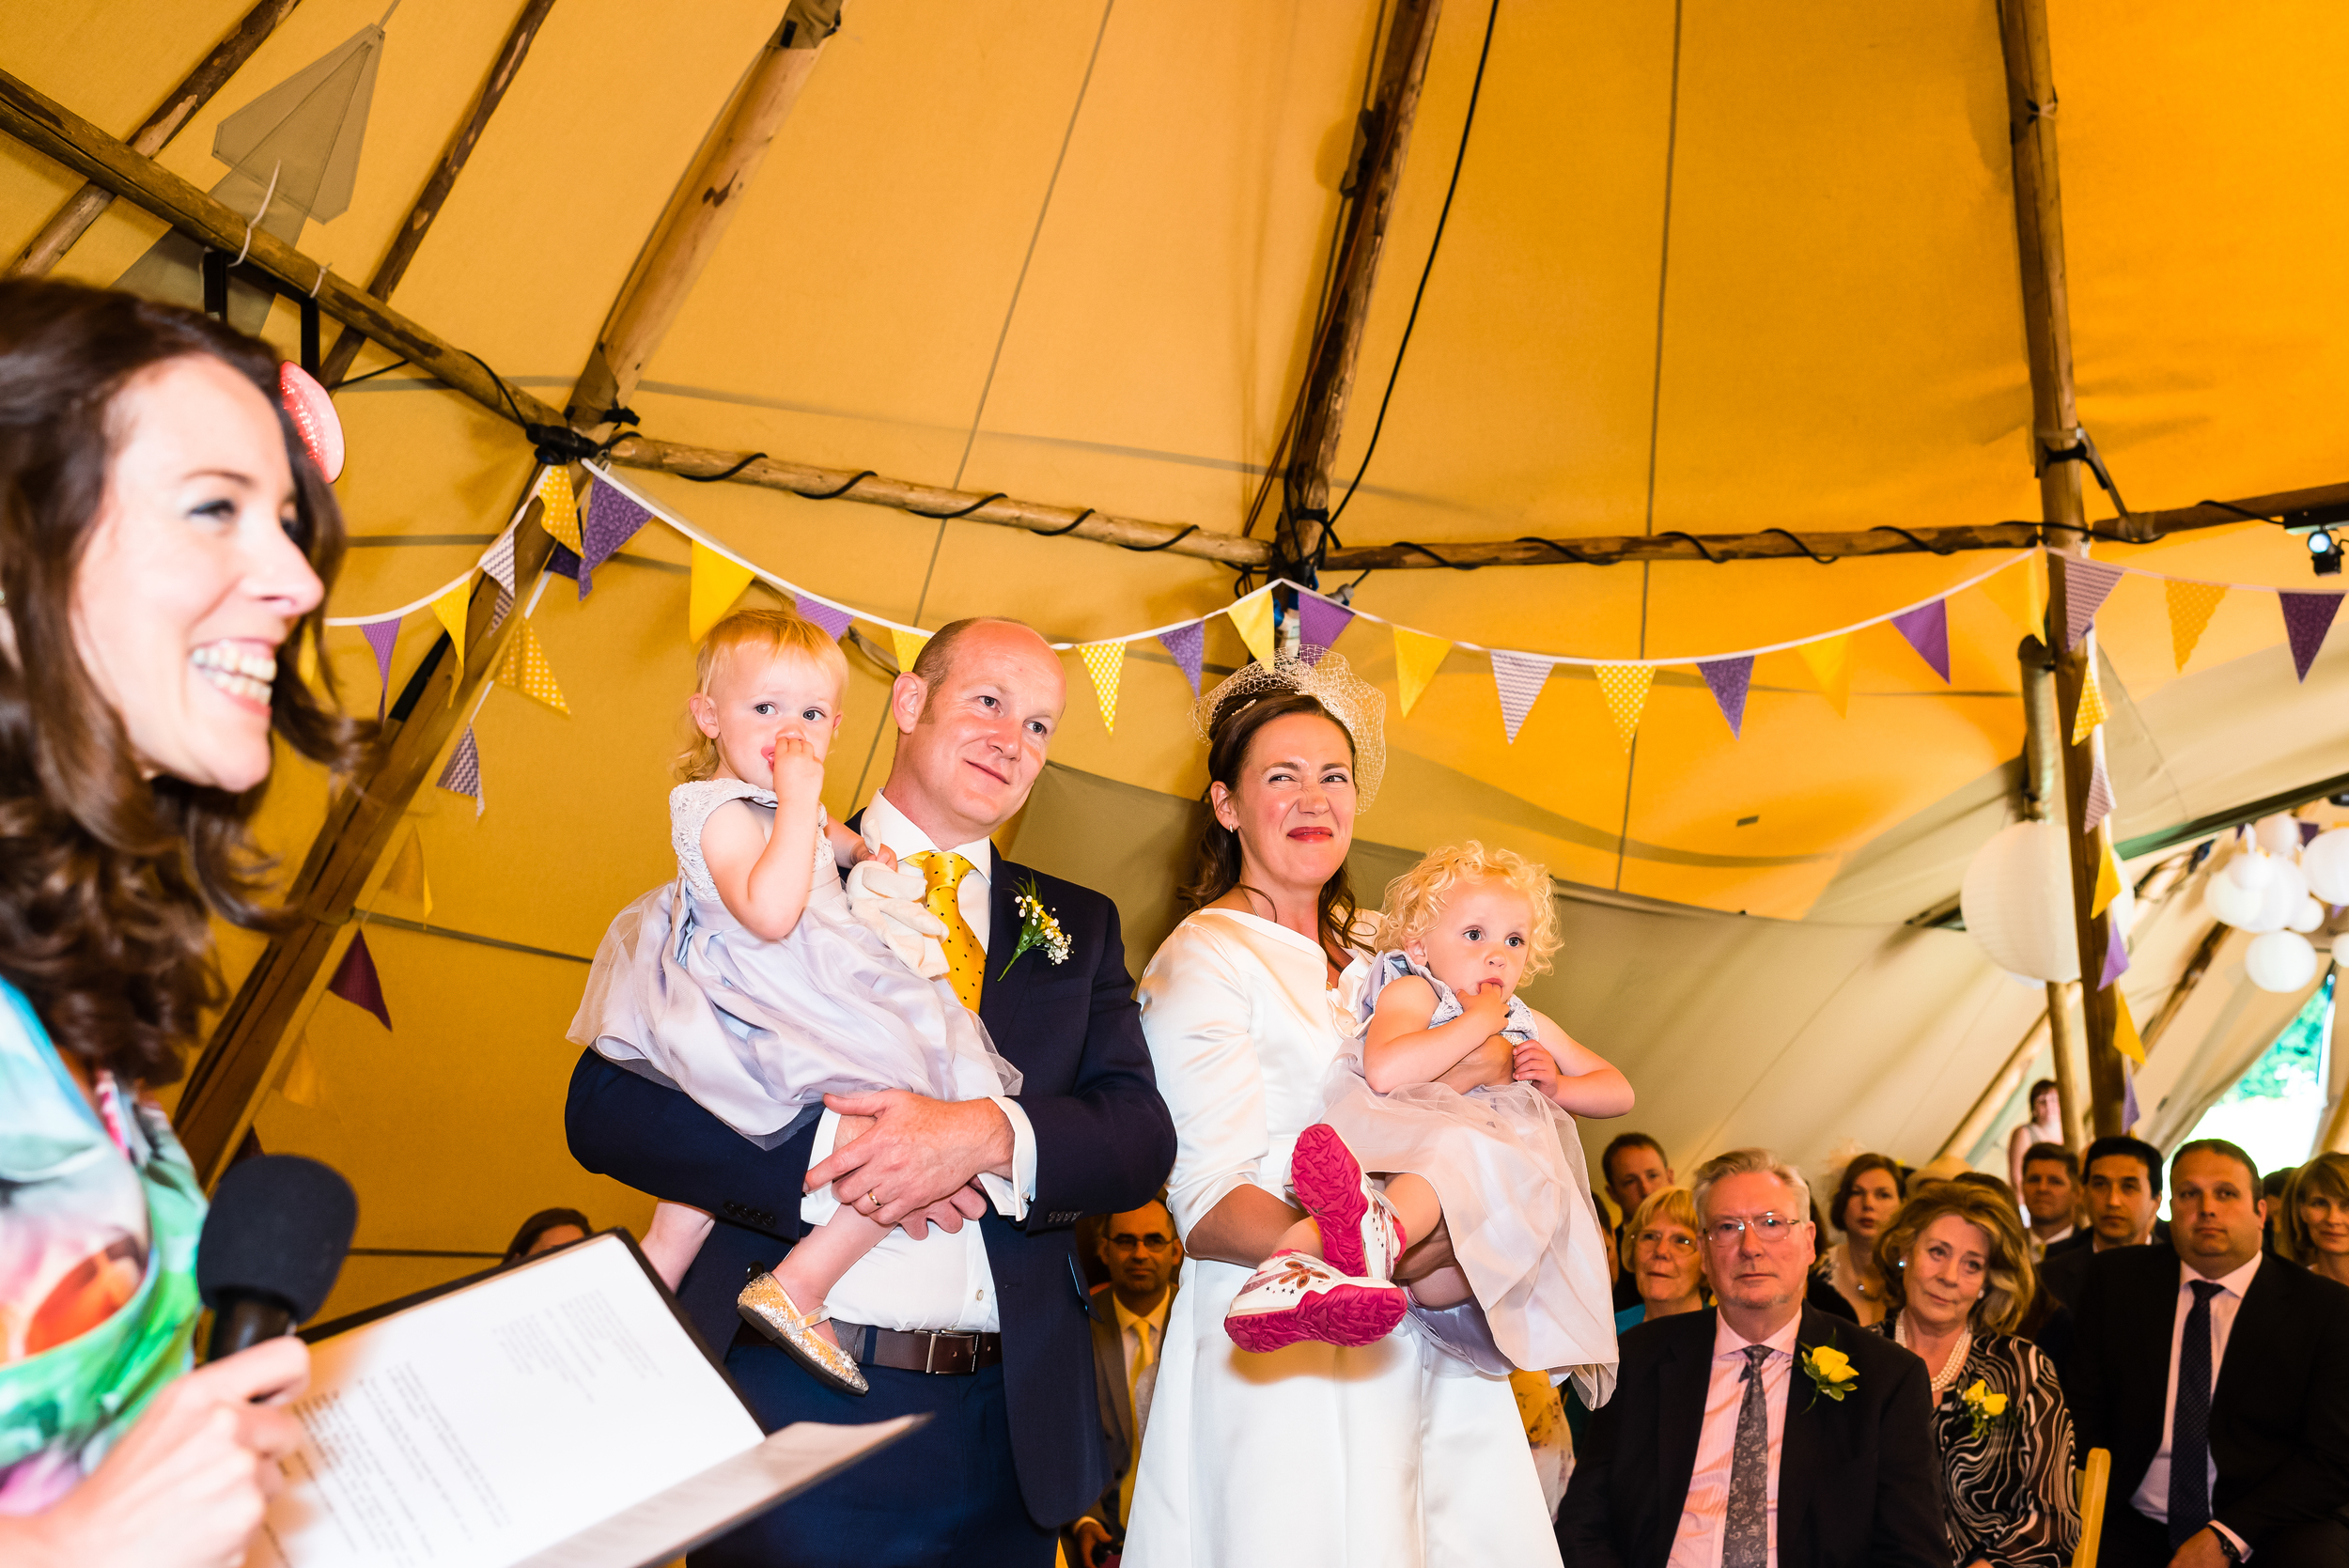 Steve & Nic - Tipi Wedding & Naming Ceremony | www.myperfectceremony.co.uk